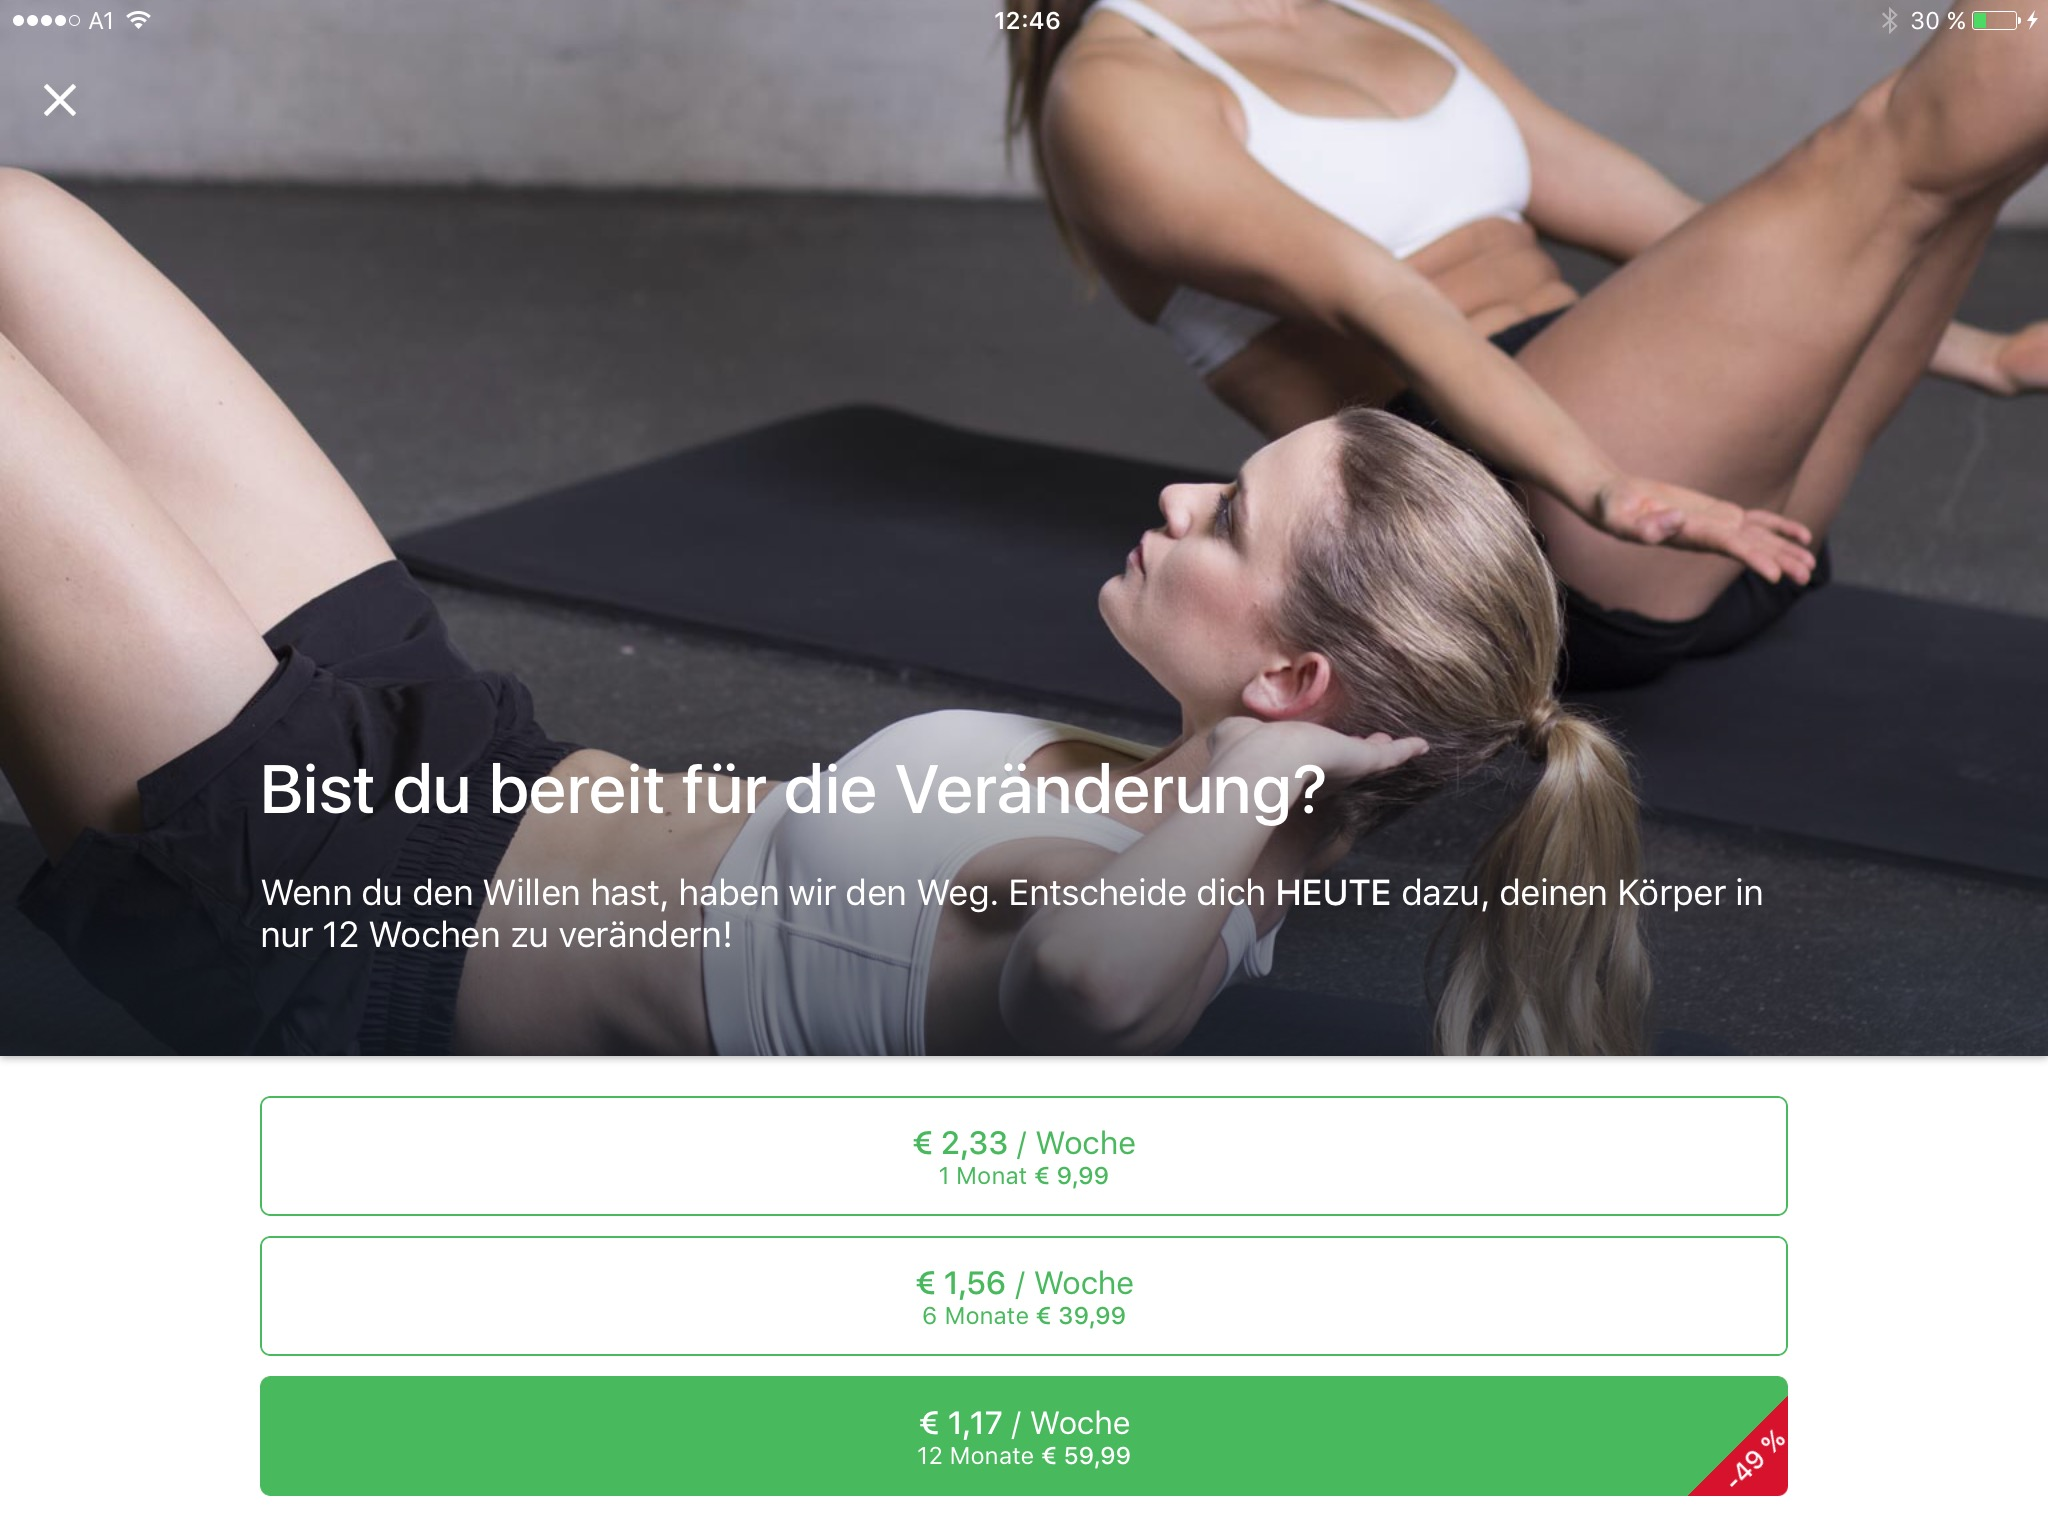 Runtastic Results | Life Full Of Blog | Tirol | Austria | Blog Östereich Blog, Blog, Fashionblog, Lifestyleblog, runtastic results test, test